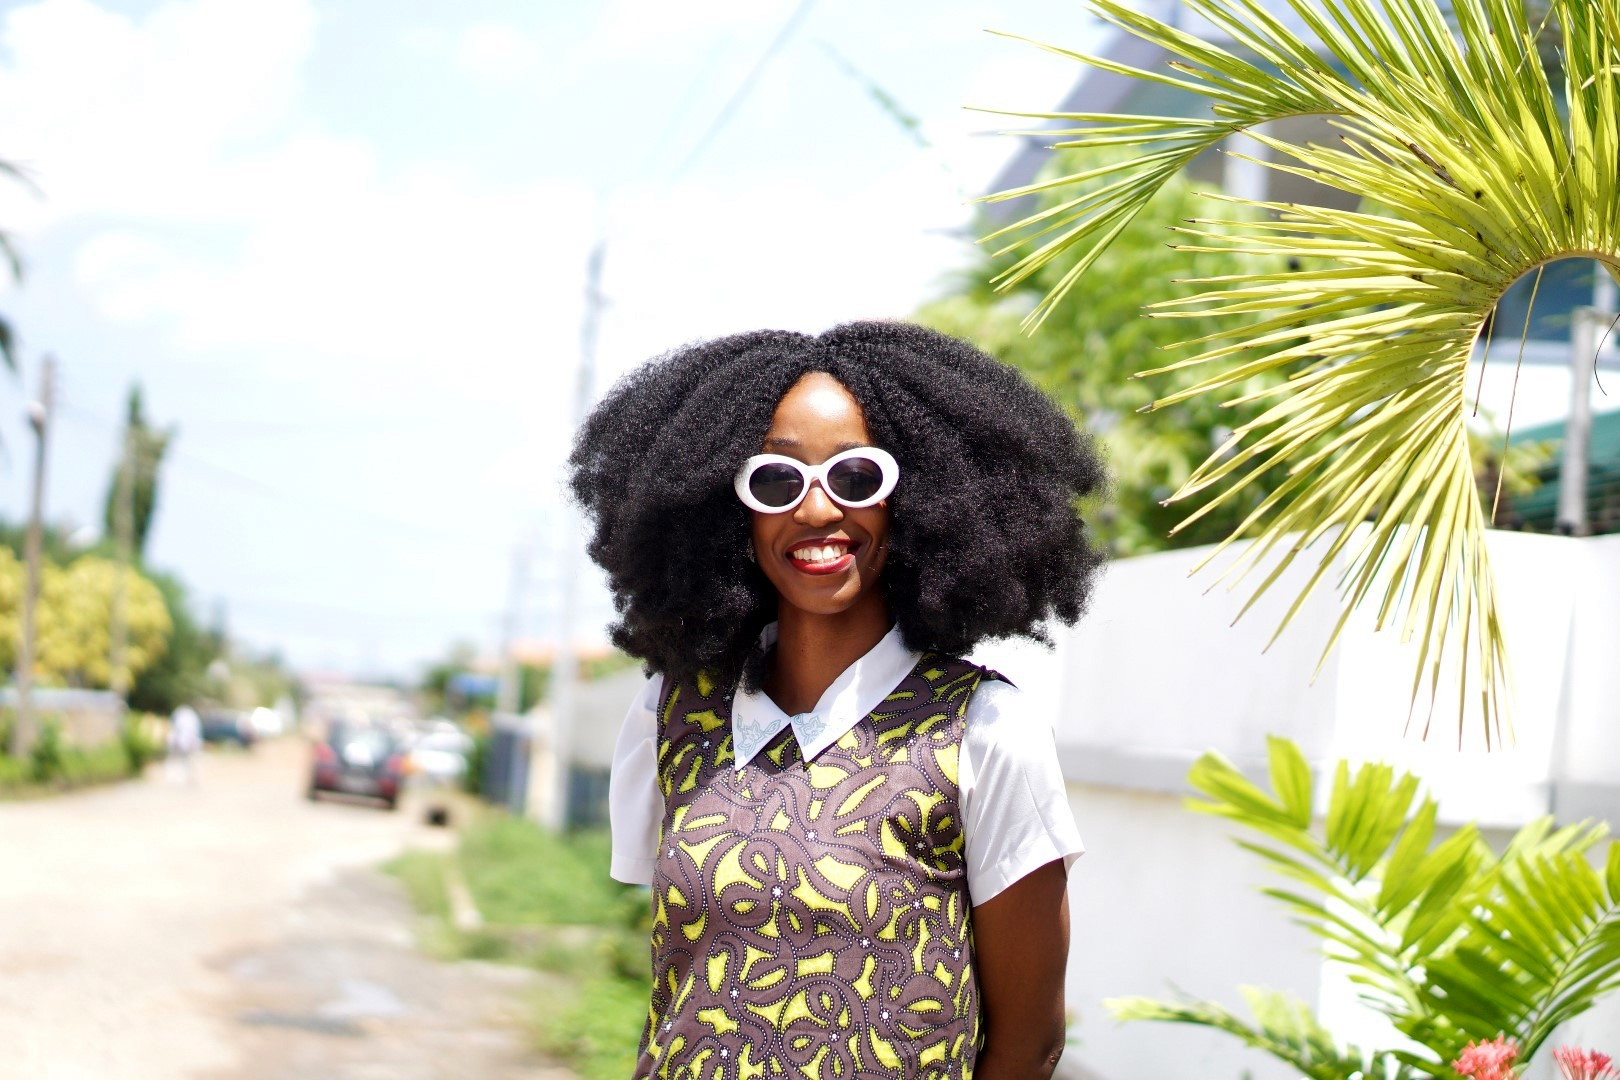 fashion blogger Cassie daves in Kurt cobain white sunglasses and afro wig by nappy haired wigs